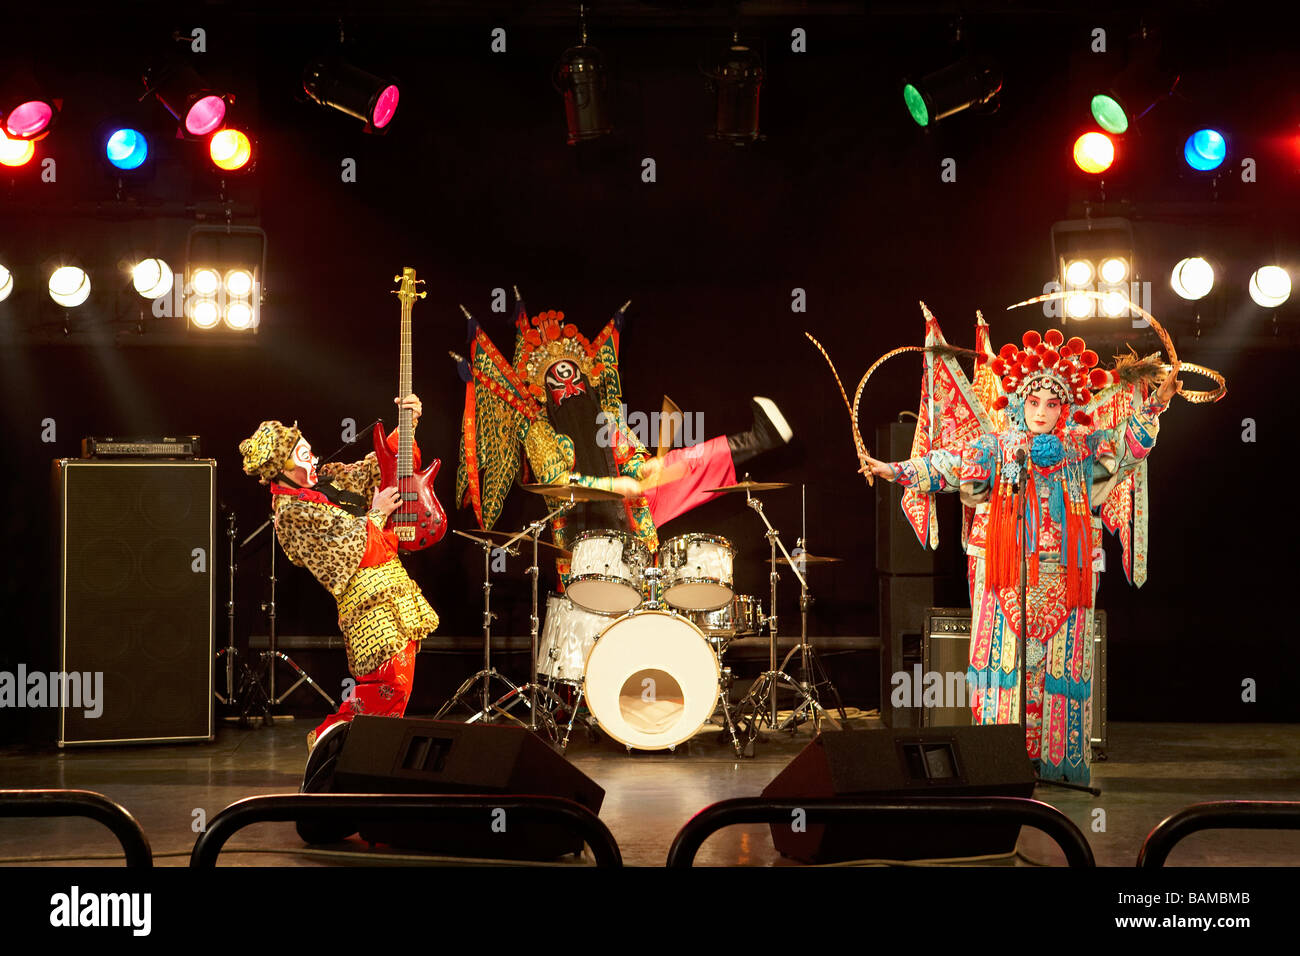 Band In Ceremonial Costume Playing Musical Instruments - Stock Image